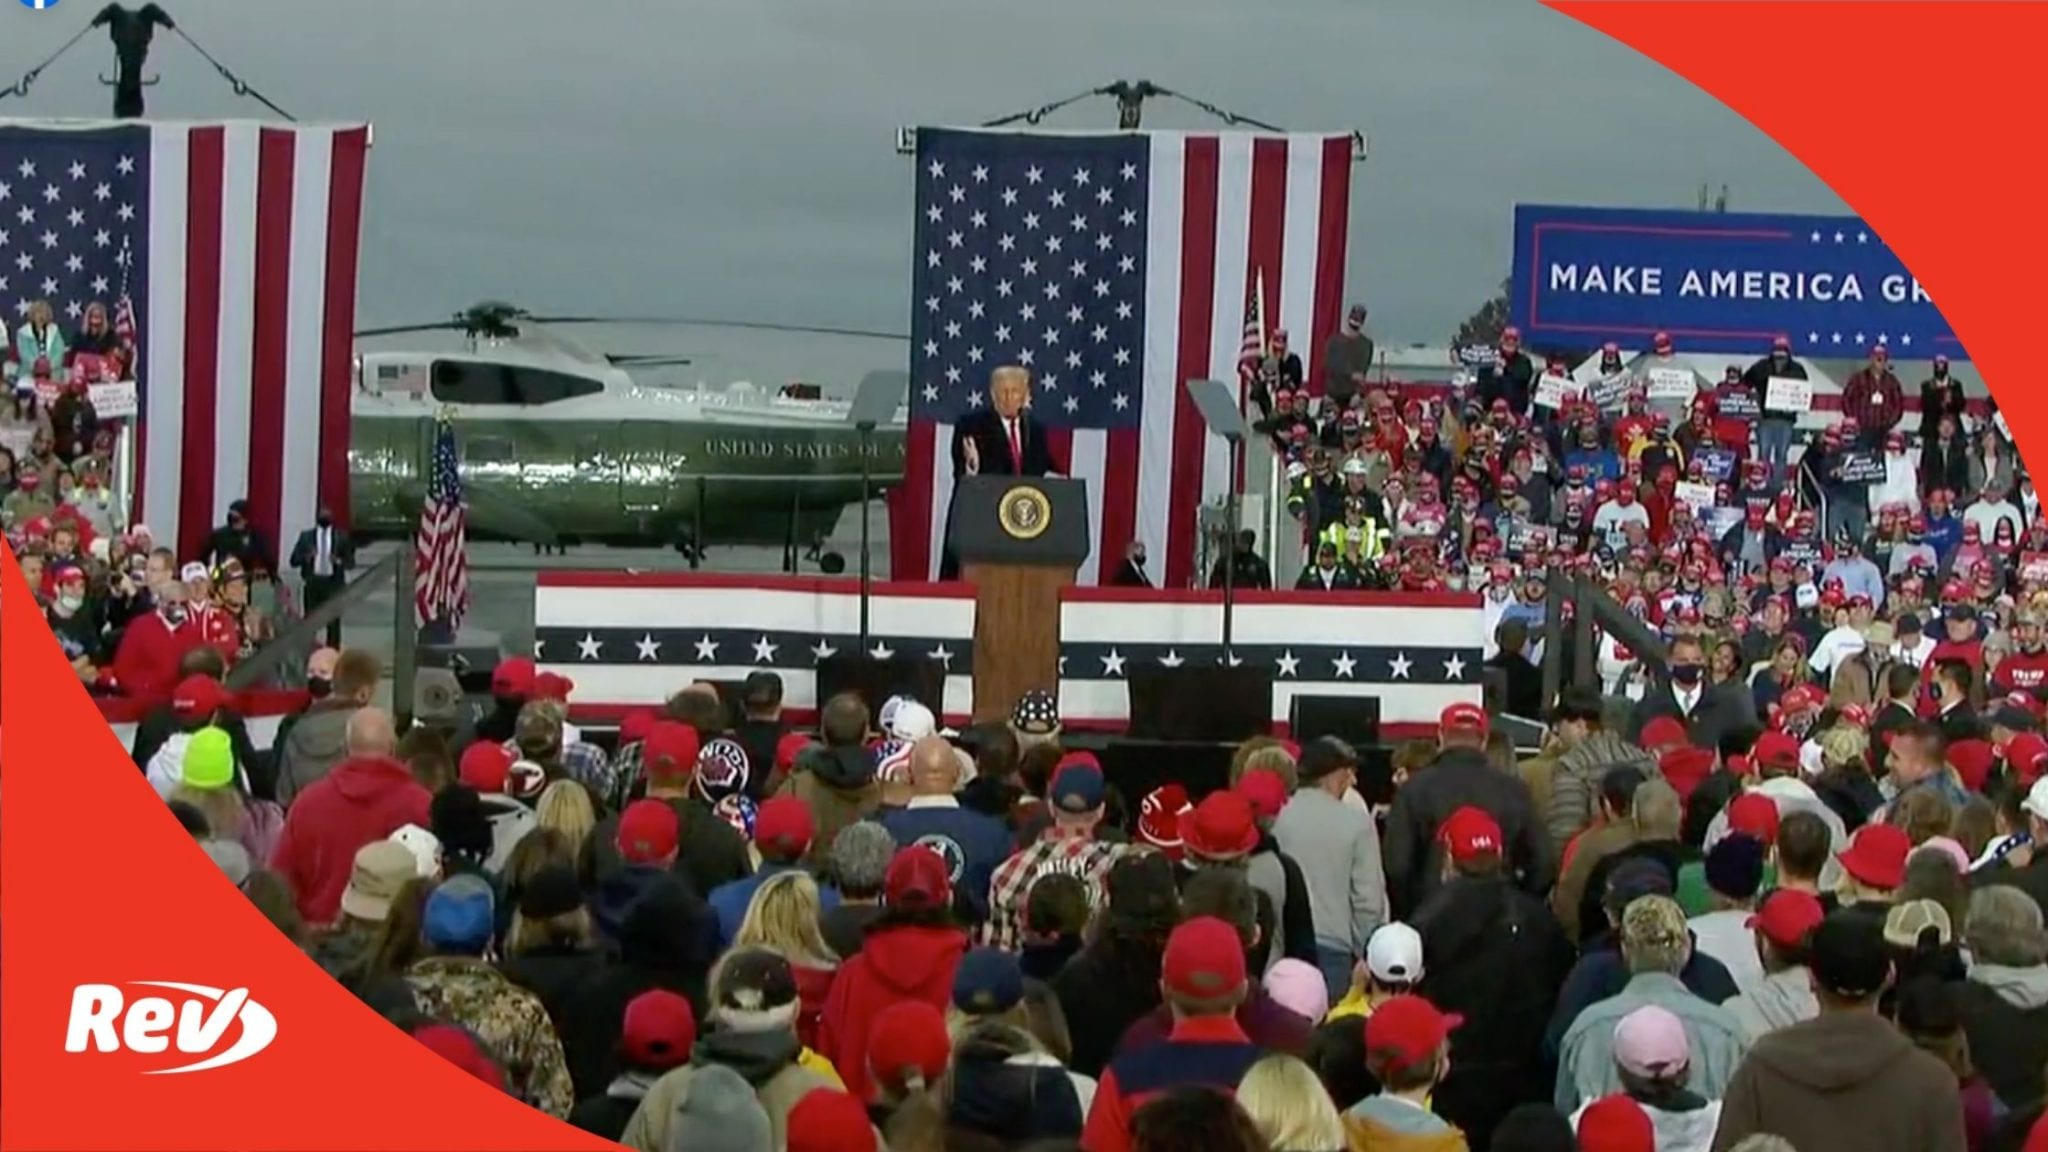 Donald Trump Rally Speech Transcript Martinsburg, PA October 26